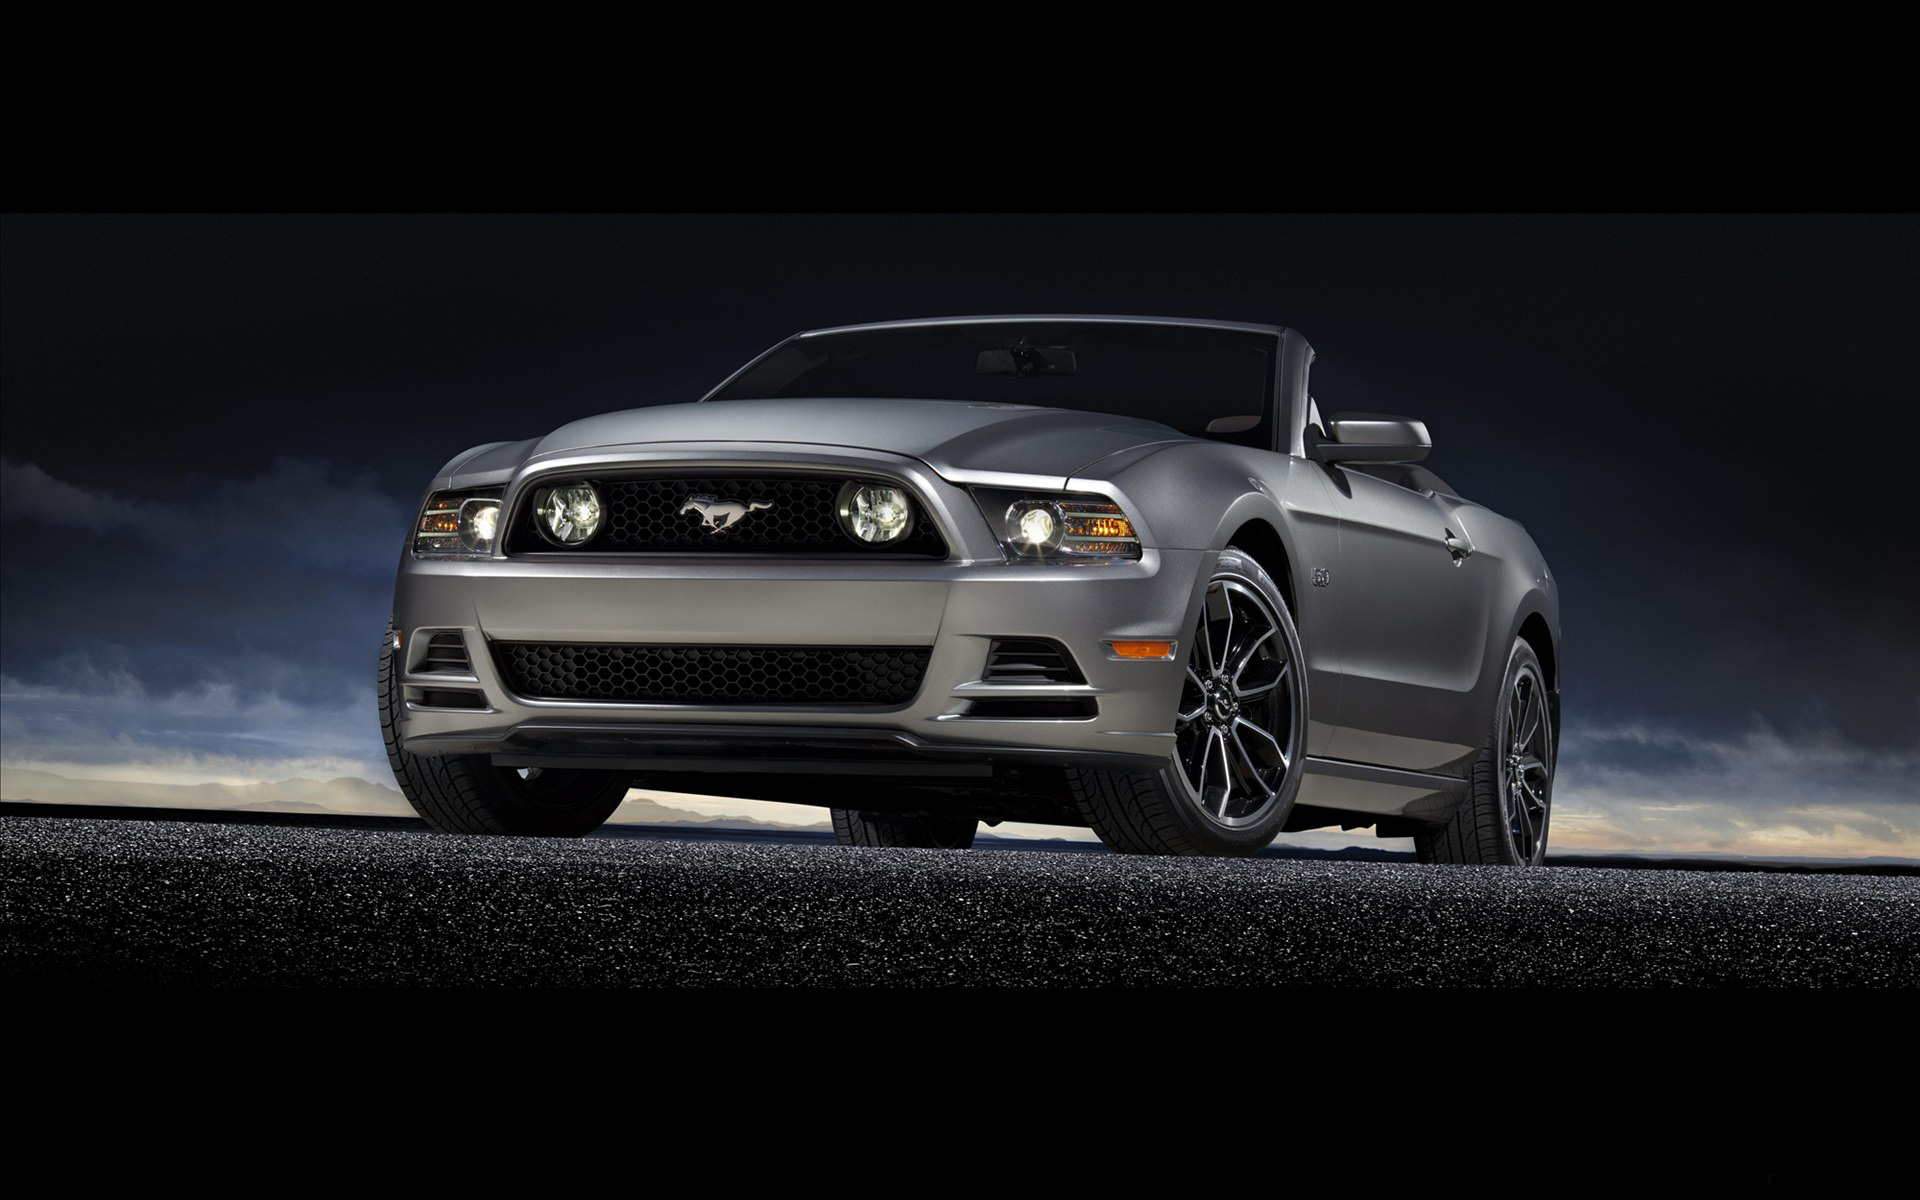 Ford Mustang GT 2013 Wallpaper HD Car Wallpapers 1920x1200